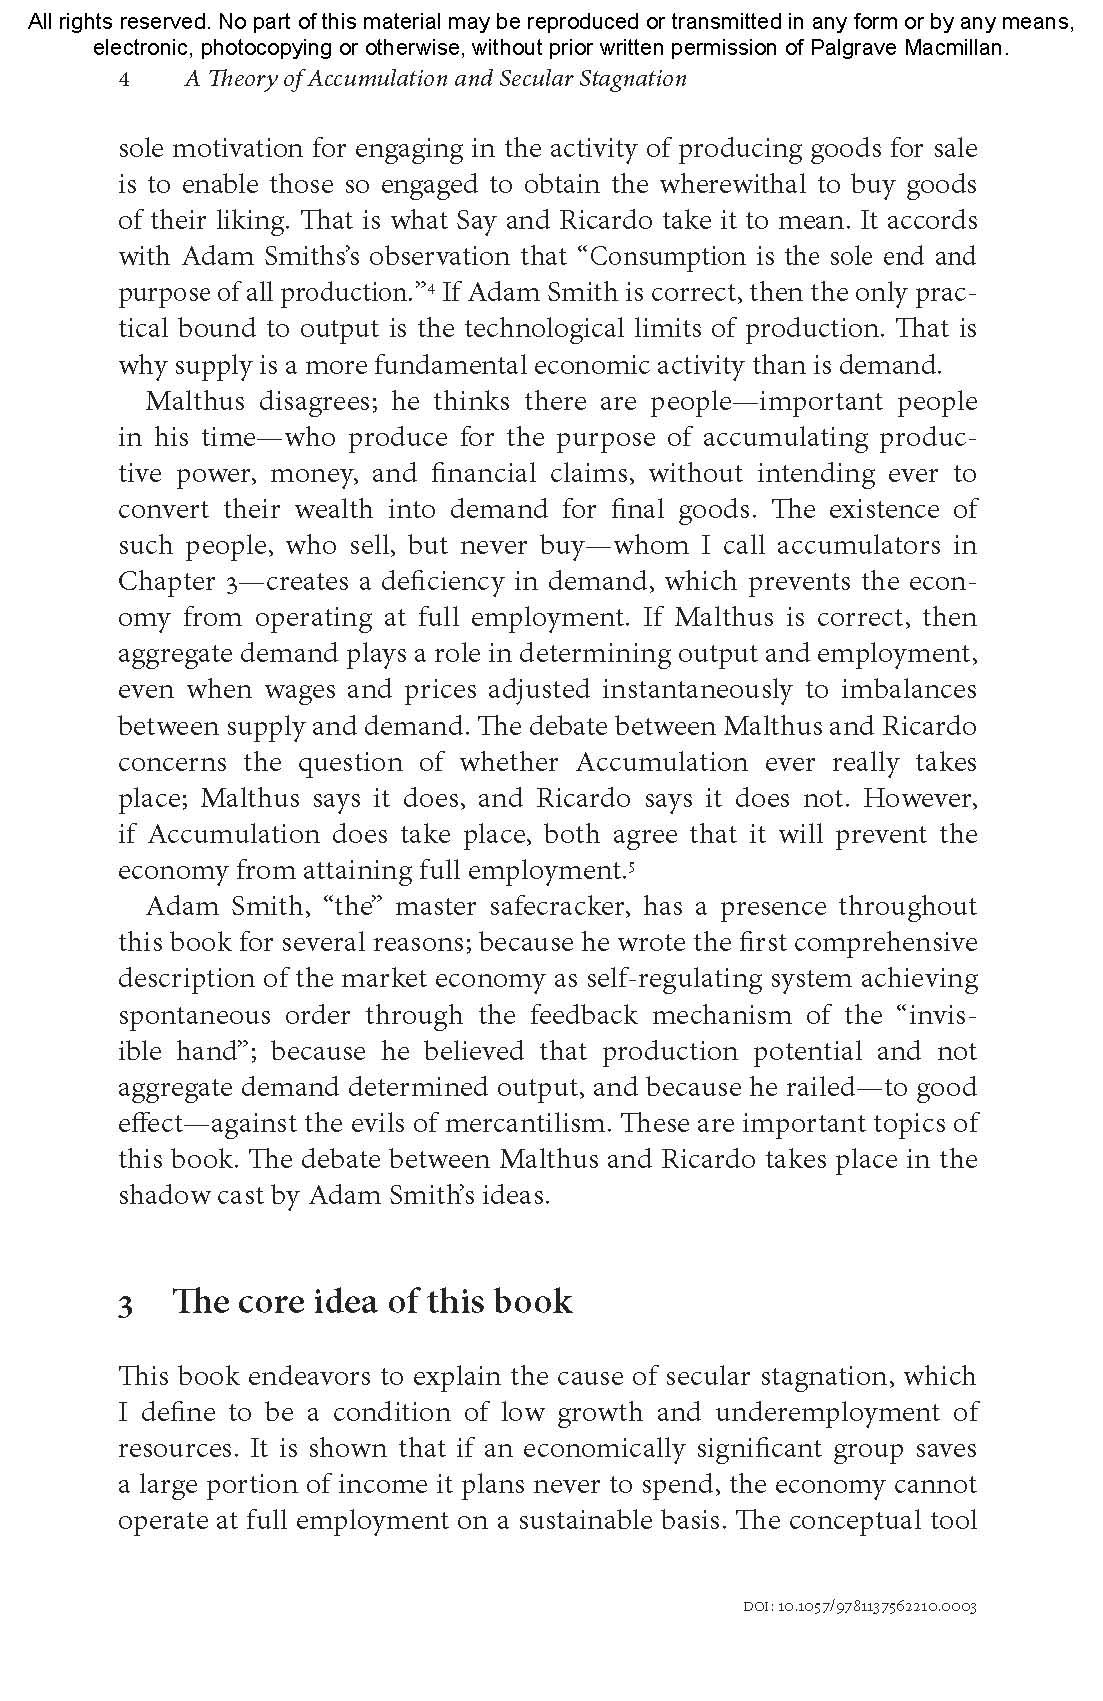 Pages from Accumulation and Secular Stagnation - pdf published book-2_Page_10.jpg